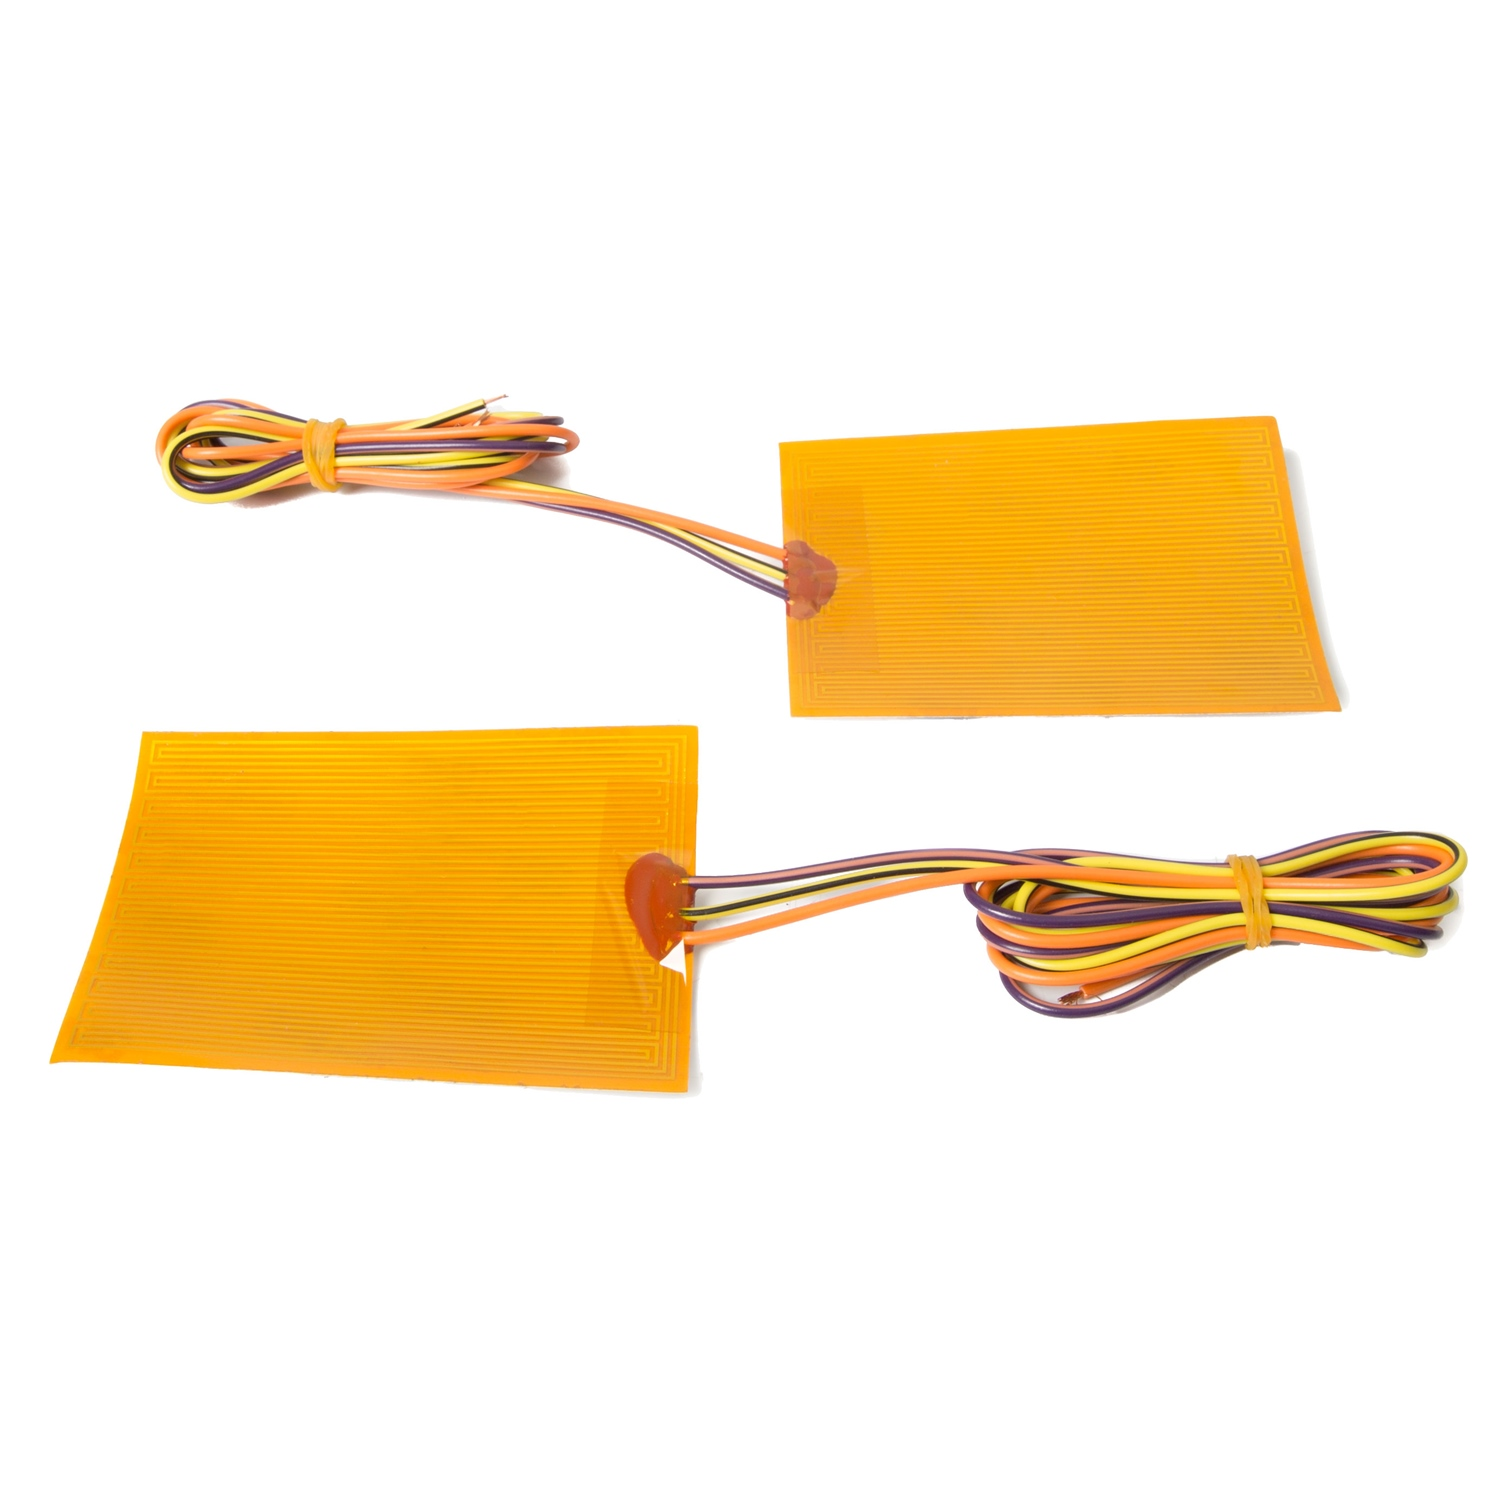 medium resolution of kimpex hand heater element kit 912165